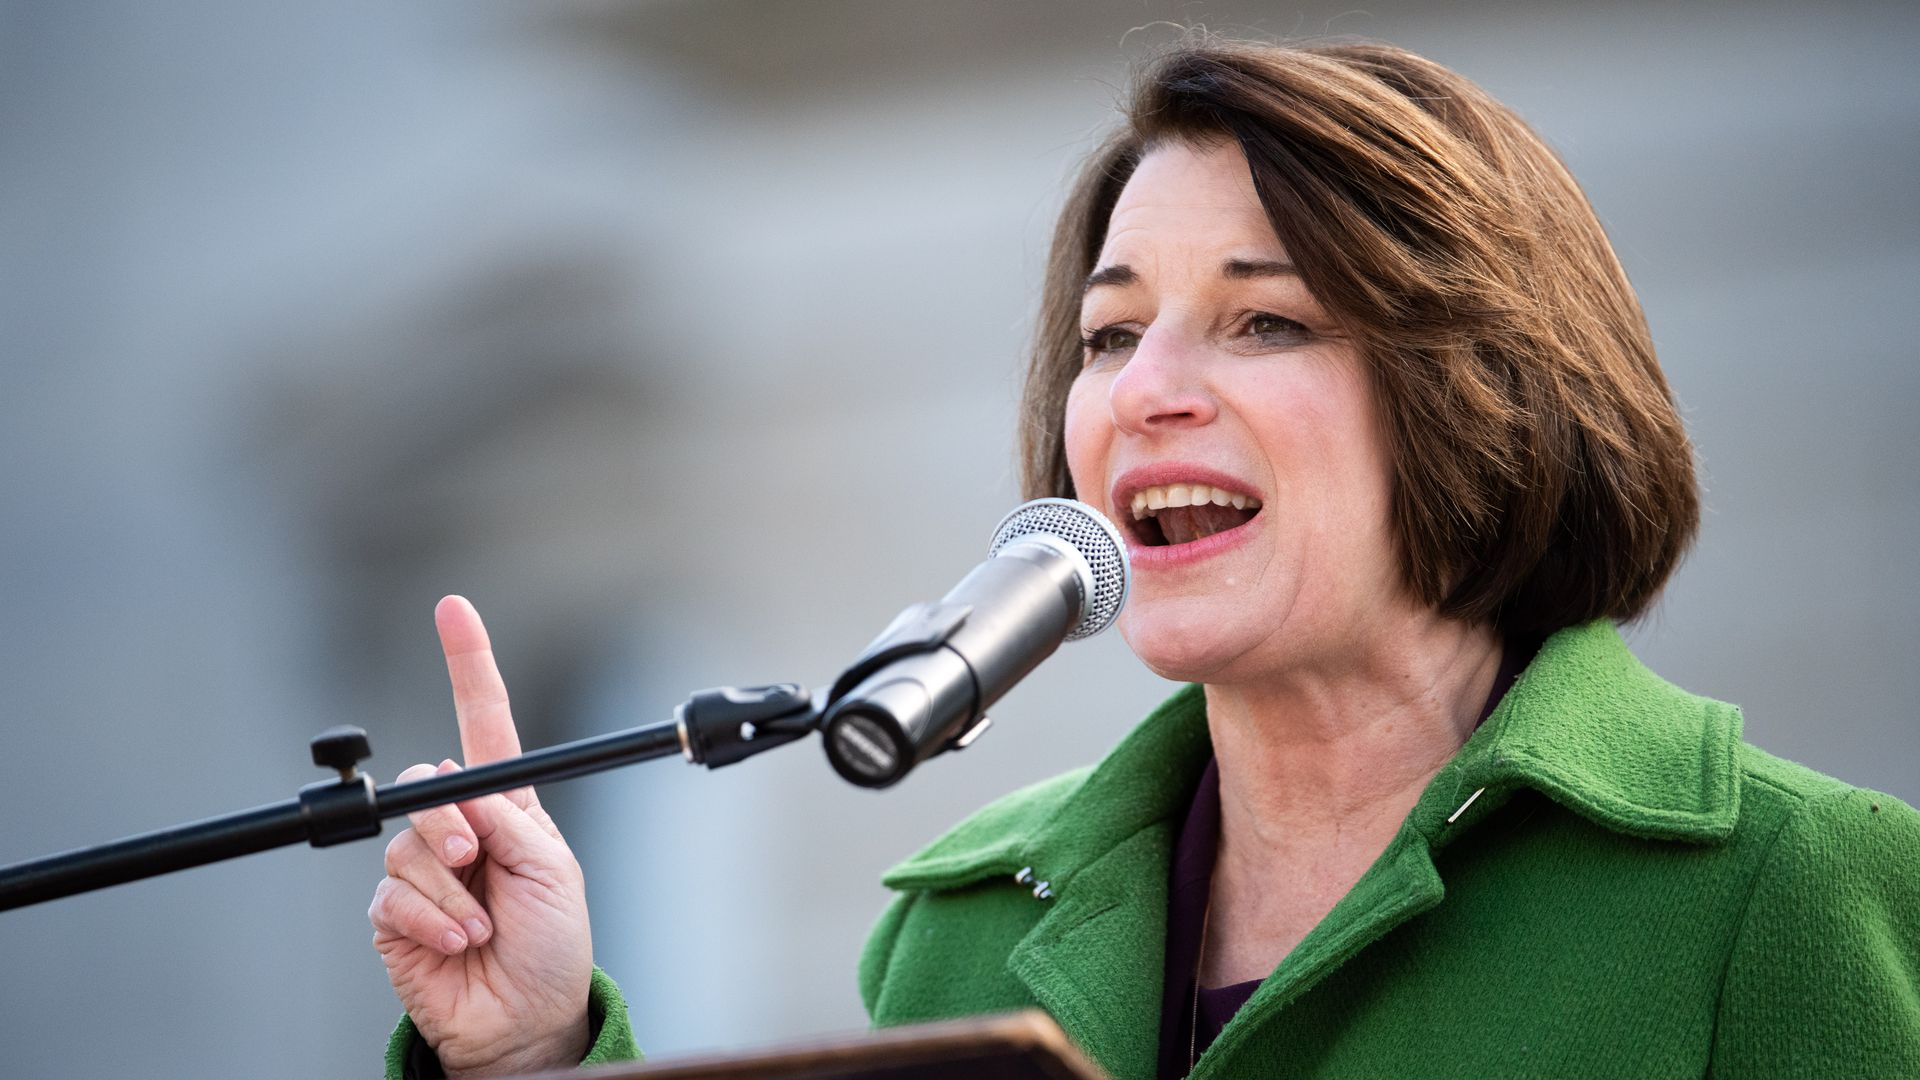 Amy Klobuchar endorsed by New Hampshire Union Leader ahead of Democratic caucuses